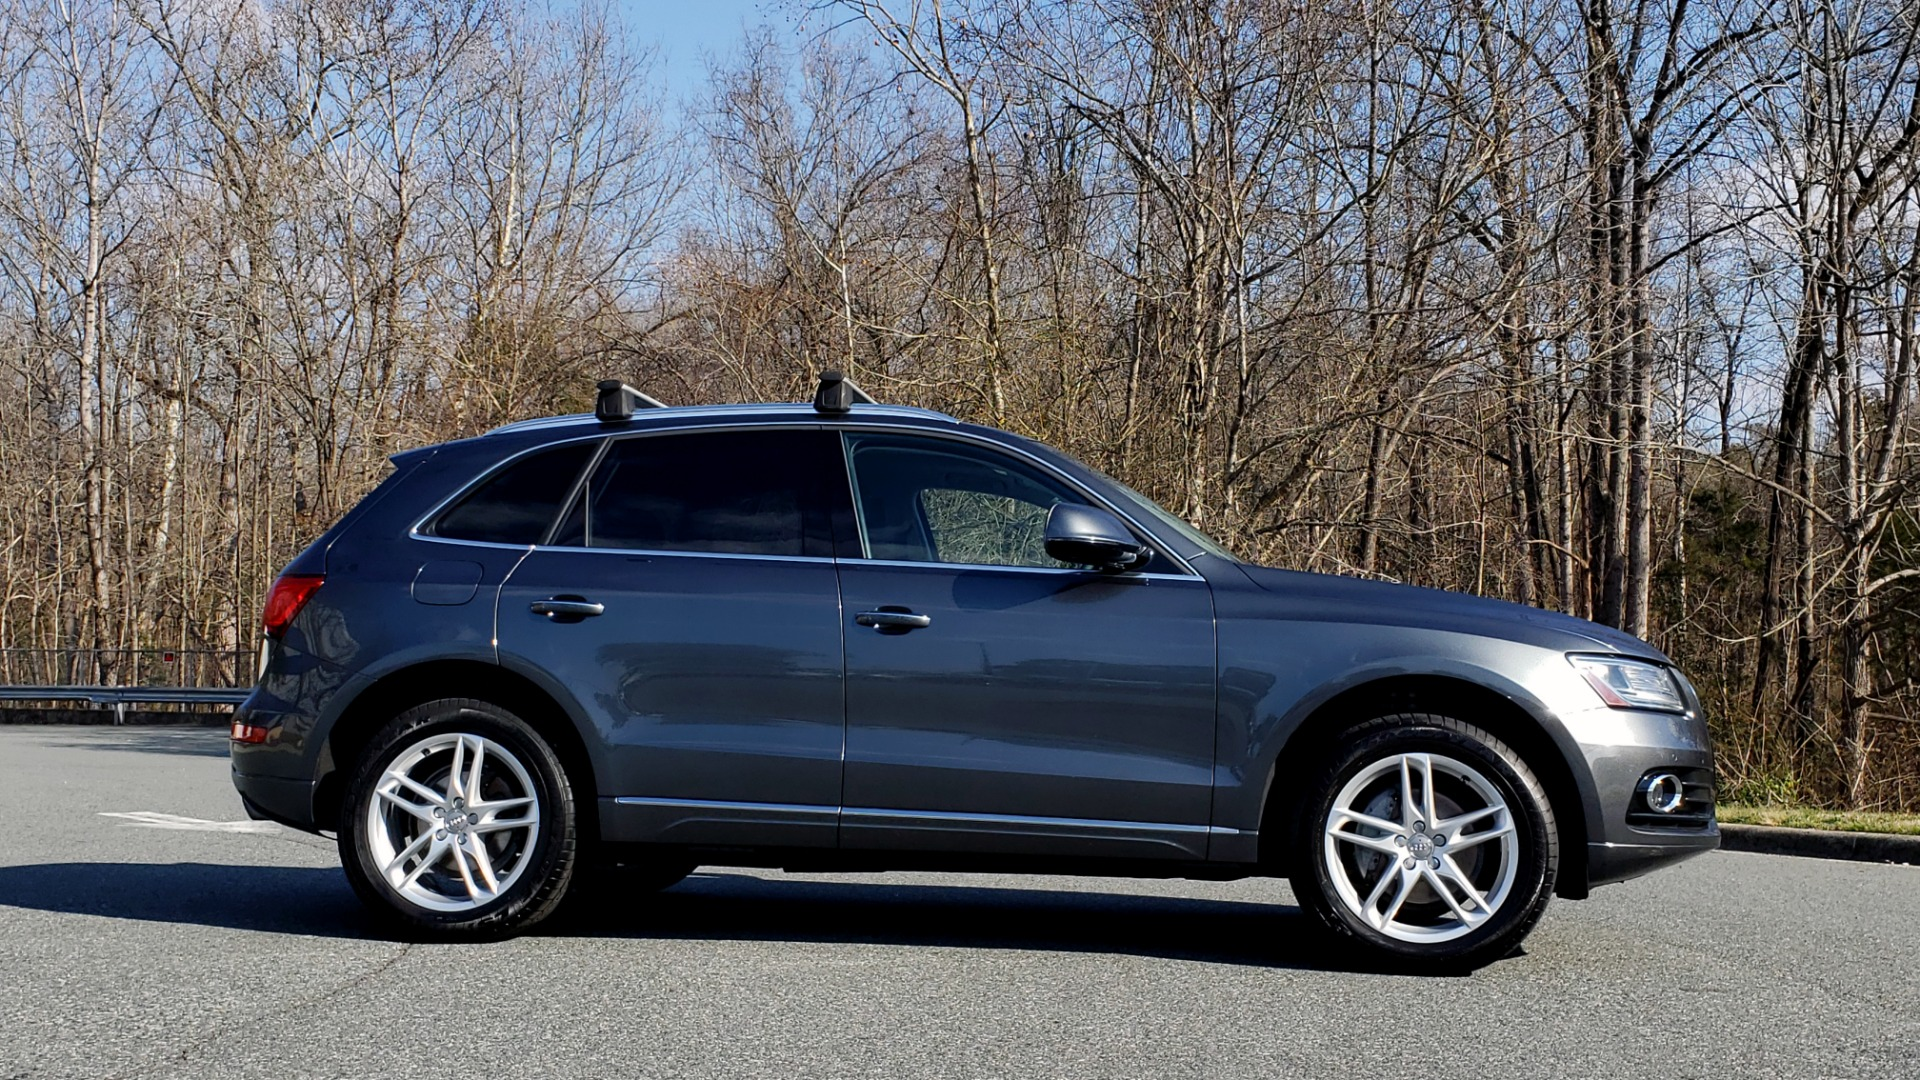 Used 2017 Audi Q5 PREMIUM PLUS / TECH / NAV / PANO / REARVIEW / B&O SND for sale Sold at Formula Imports in Charlotte NC 28227 5